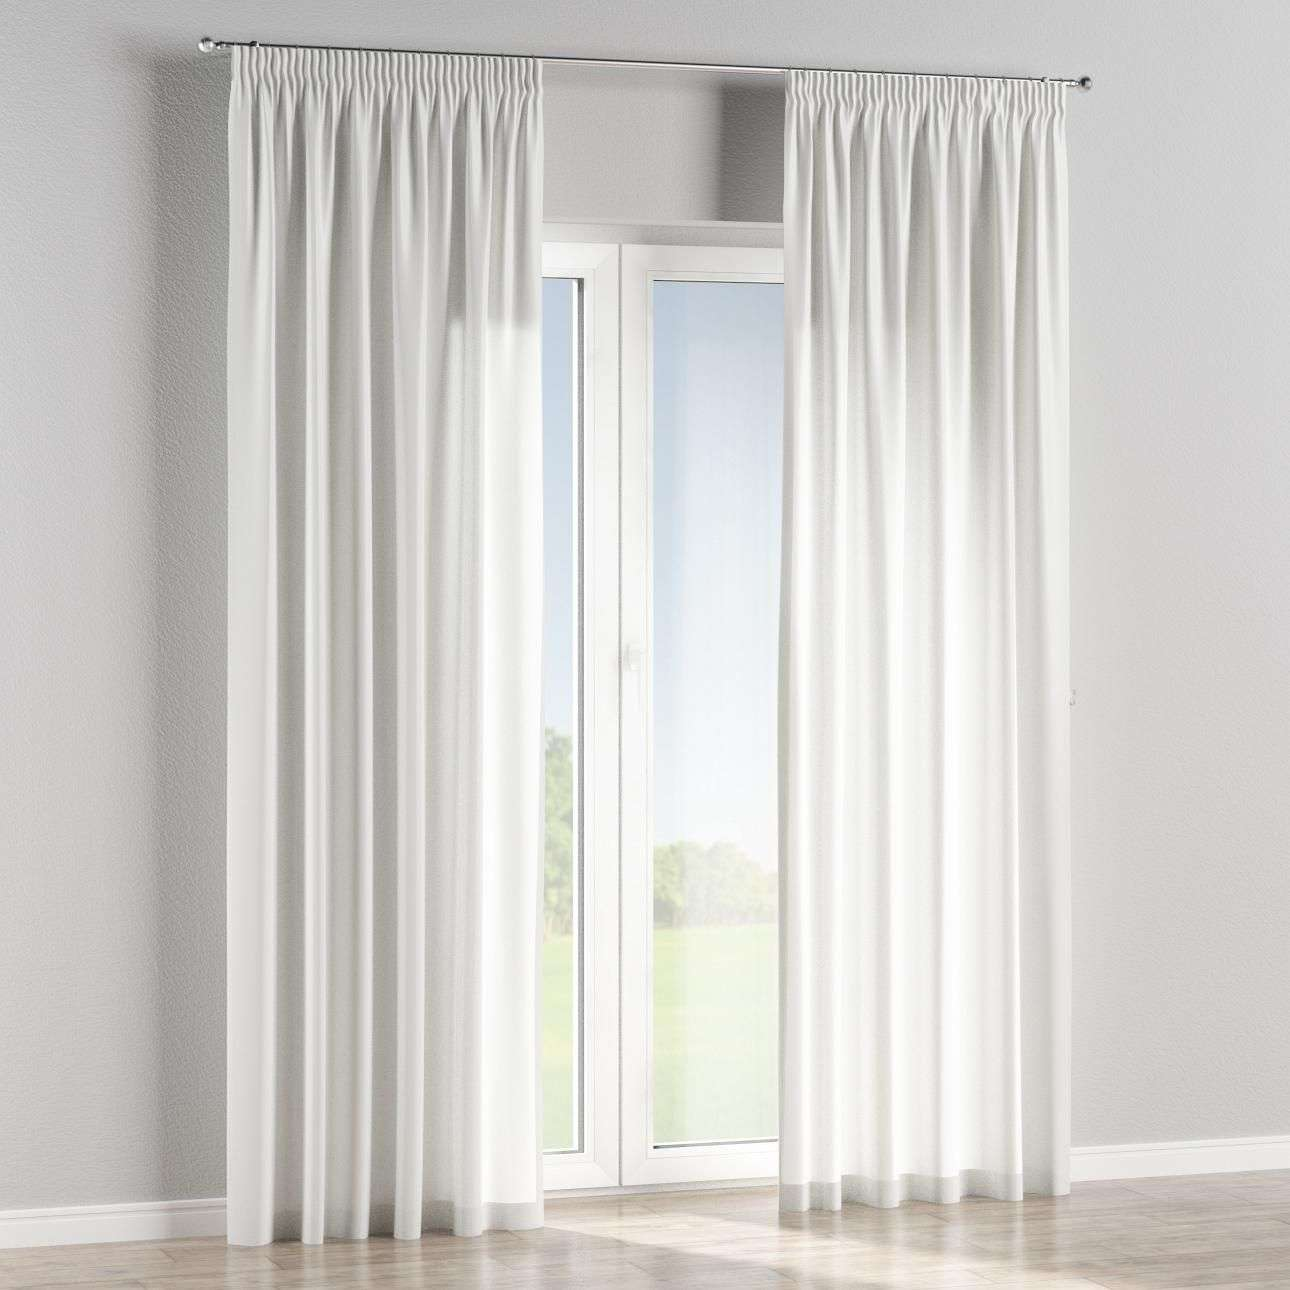 Pencil pleat curtains in collection Linen , fabric: 392-08